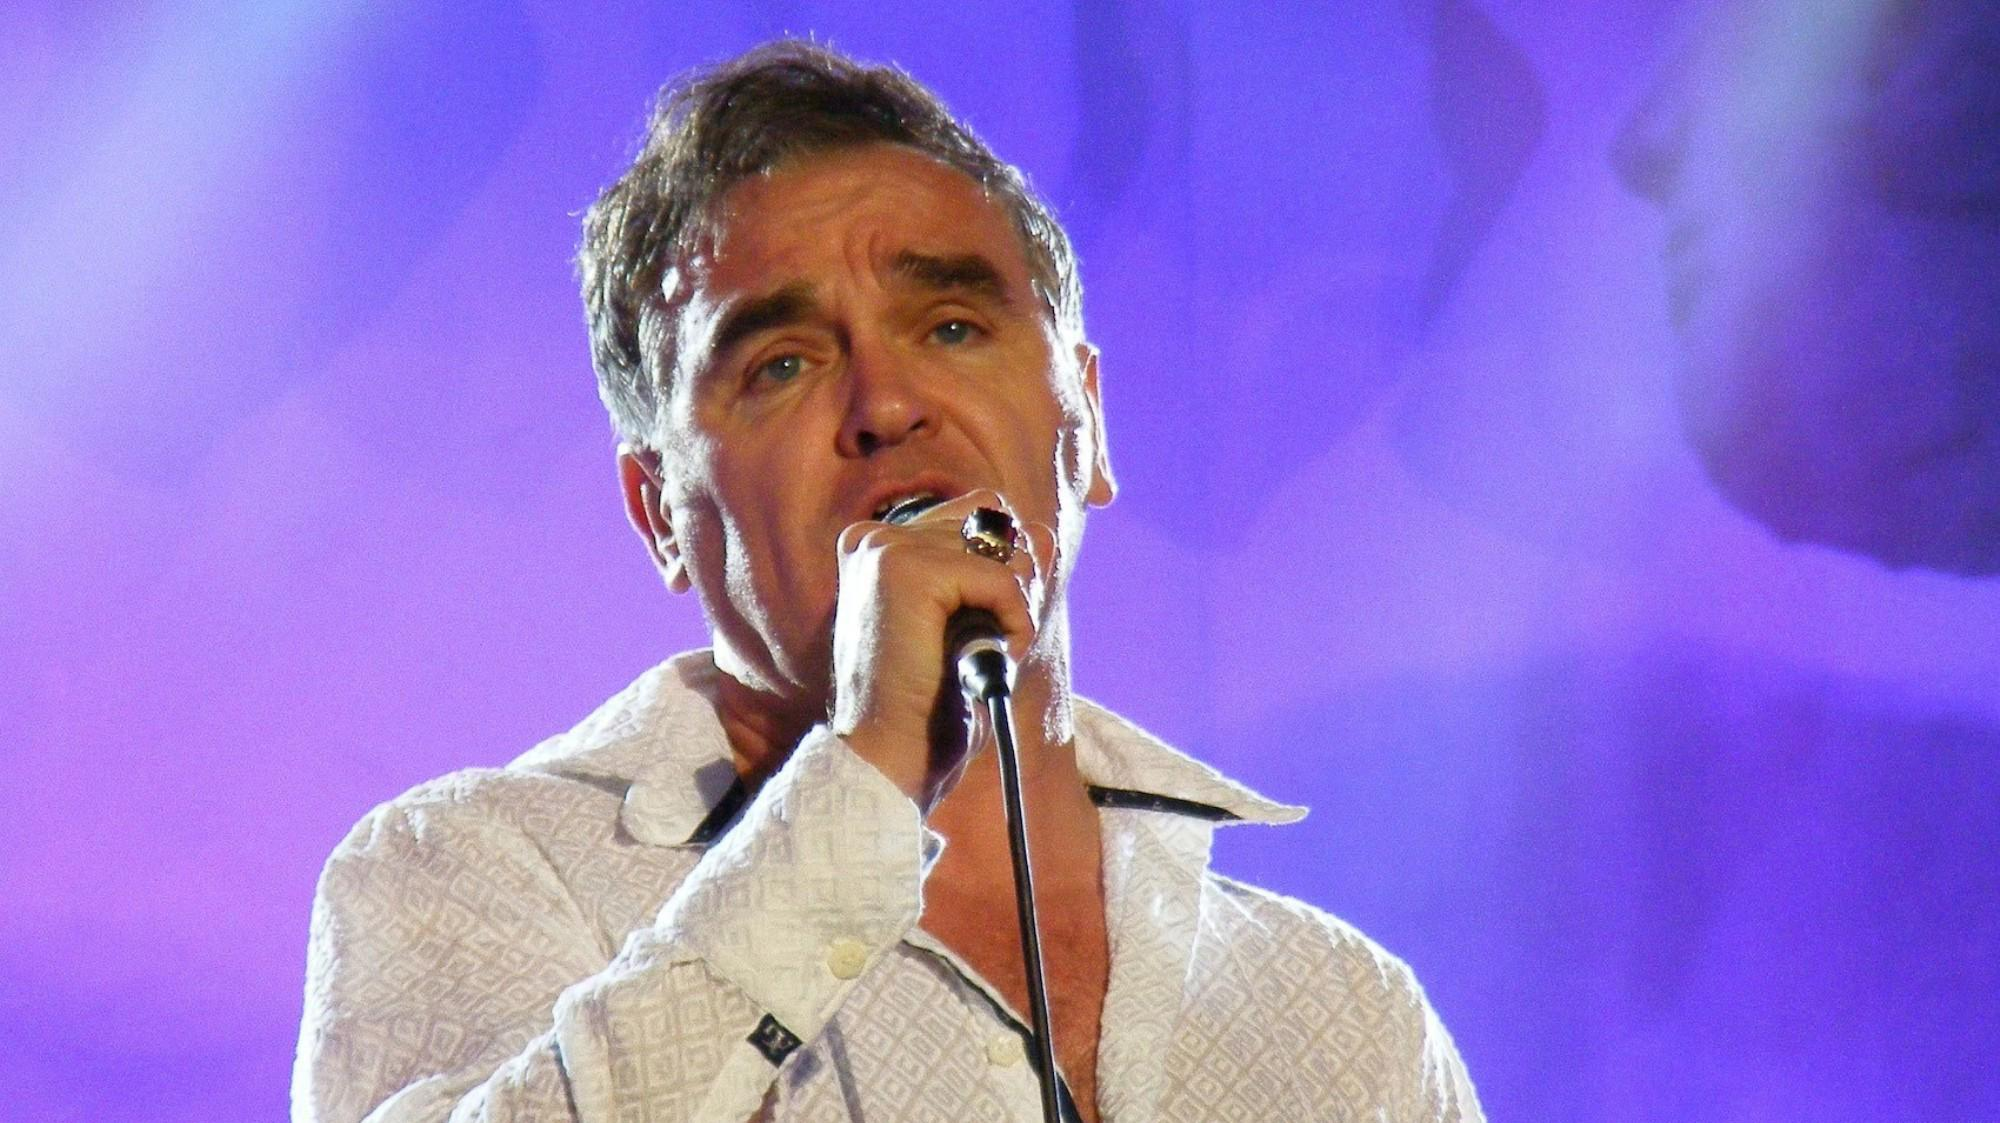 Morrisey is for marriage equality, but asks Ireland to completely enter into the 21st century: http://t.co/SBQCeg7GSx http://t.co/xHBqMxZ0IO